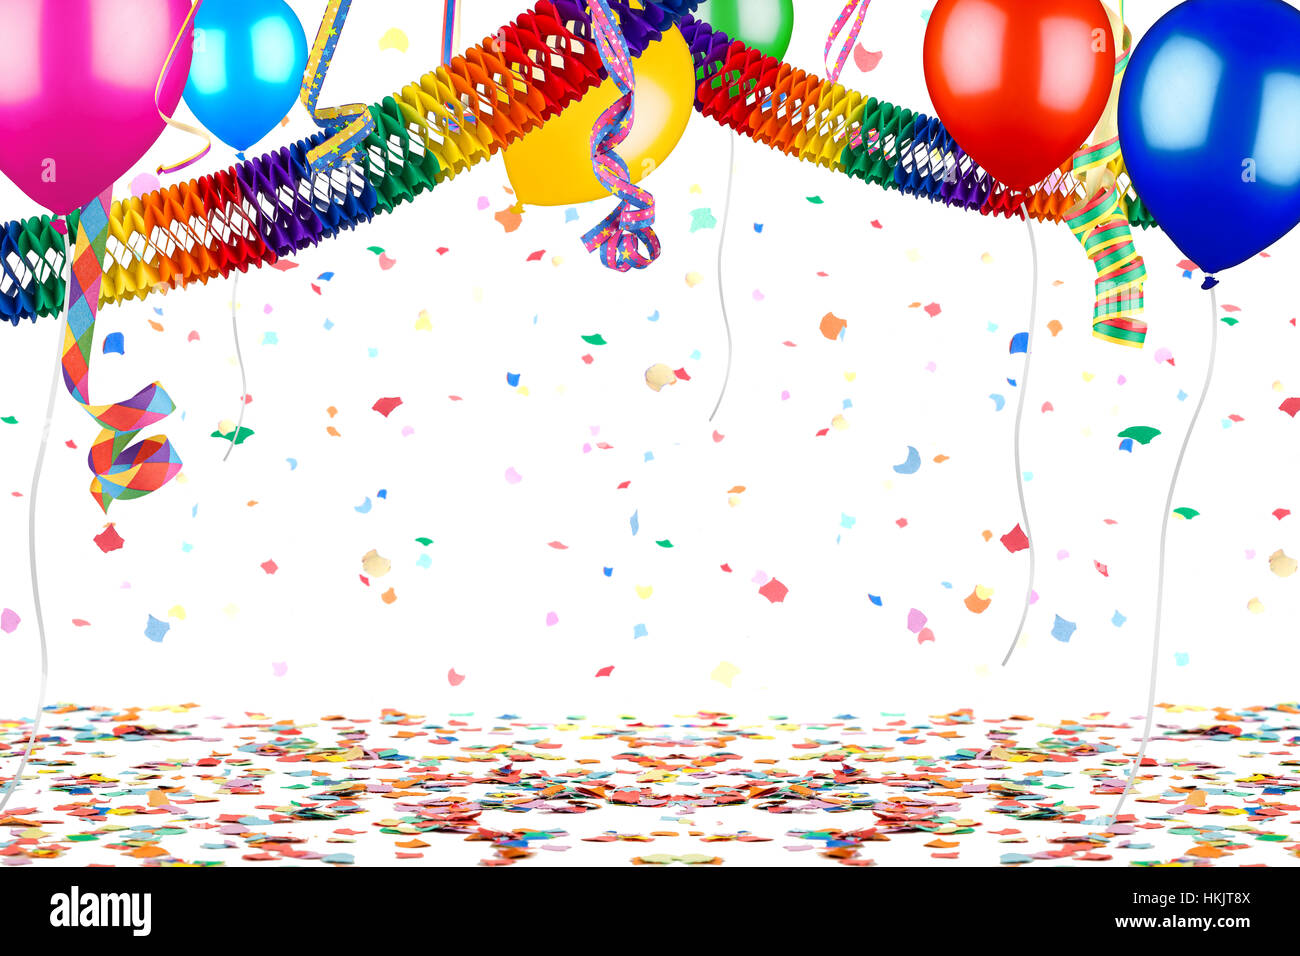 colorful empty party carnival birthday celebration background with